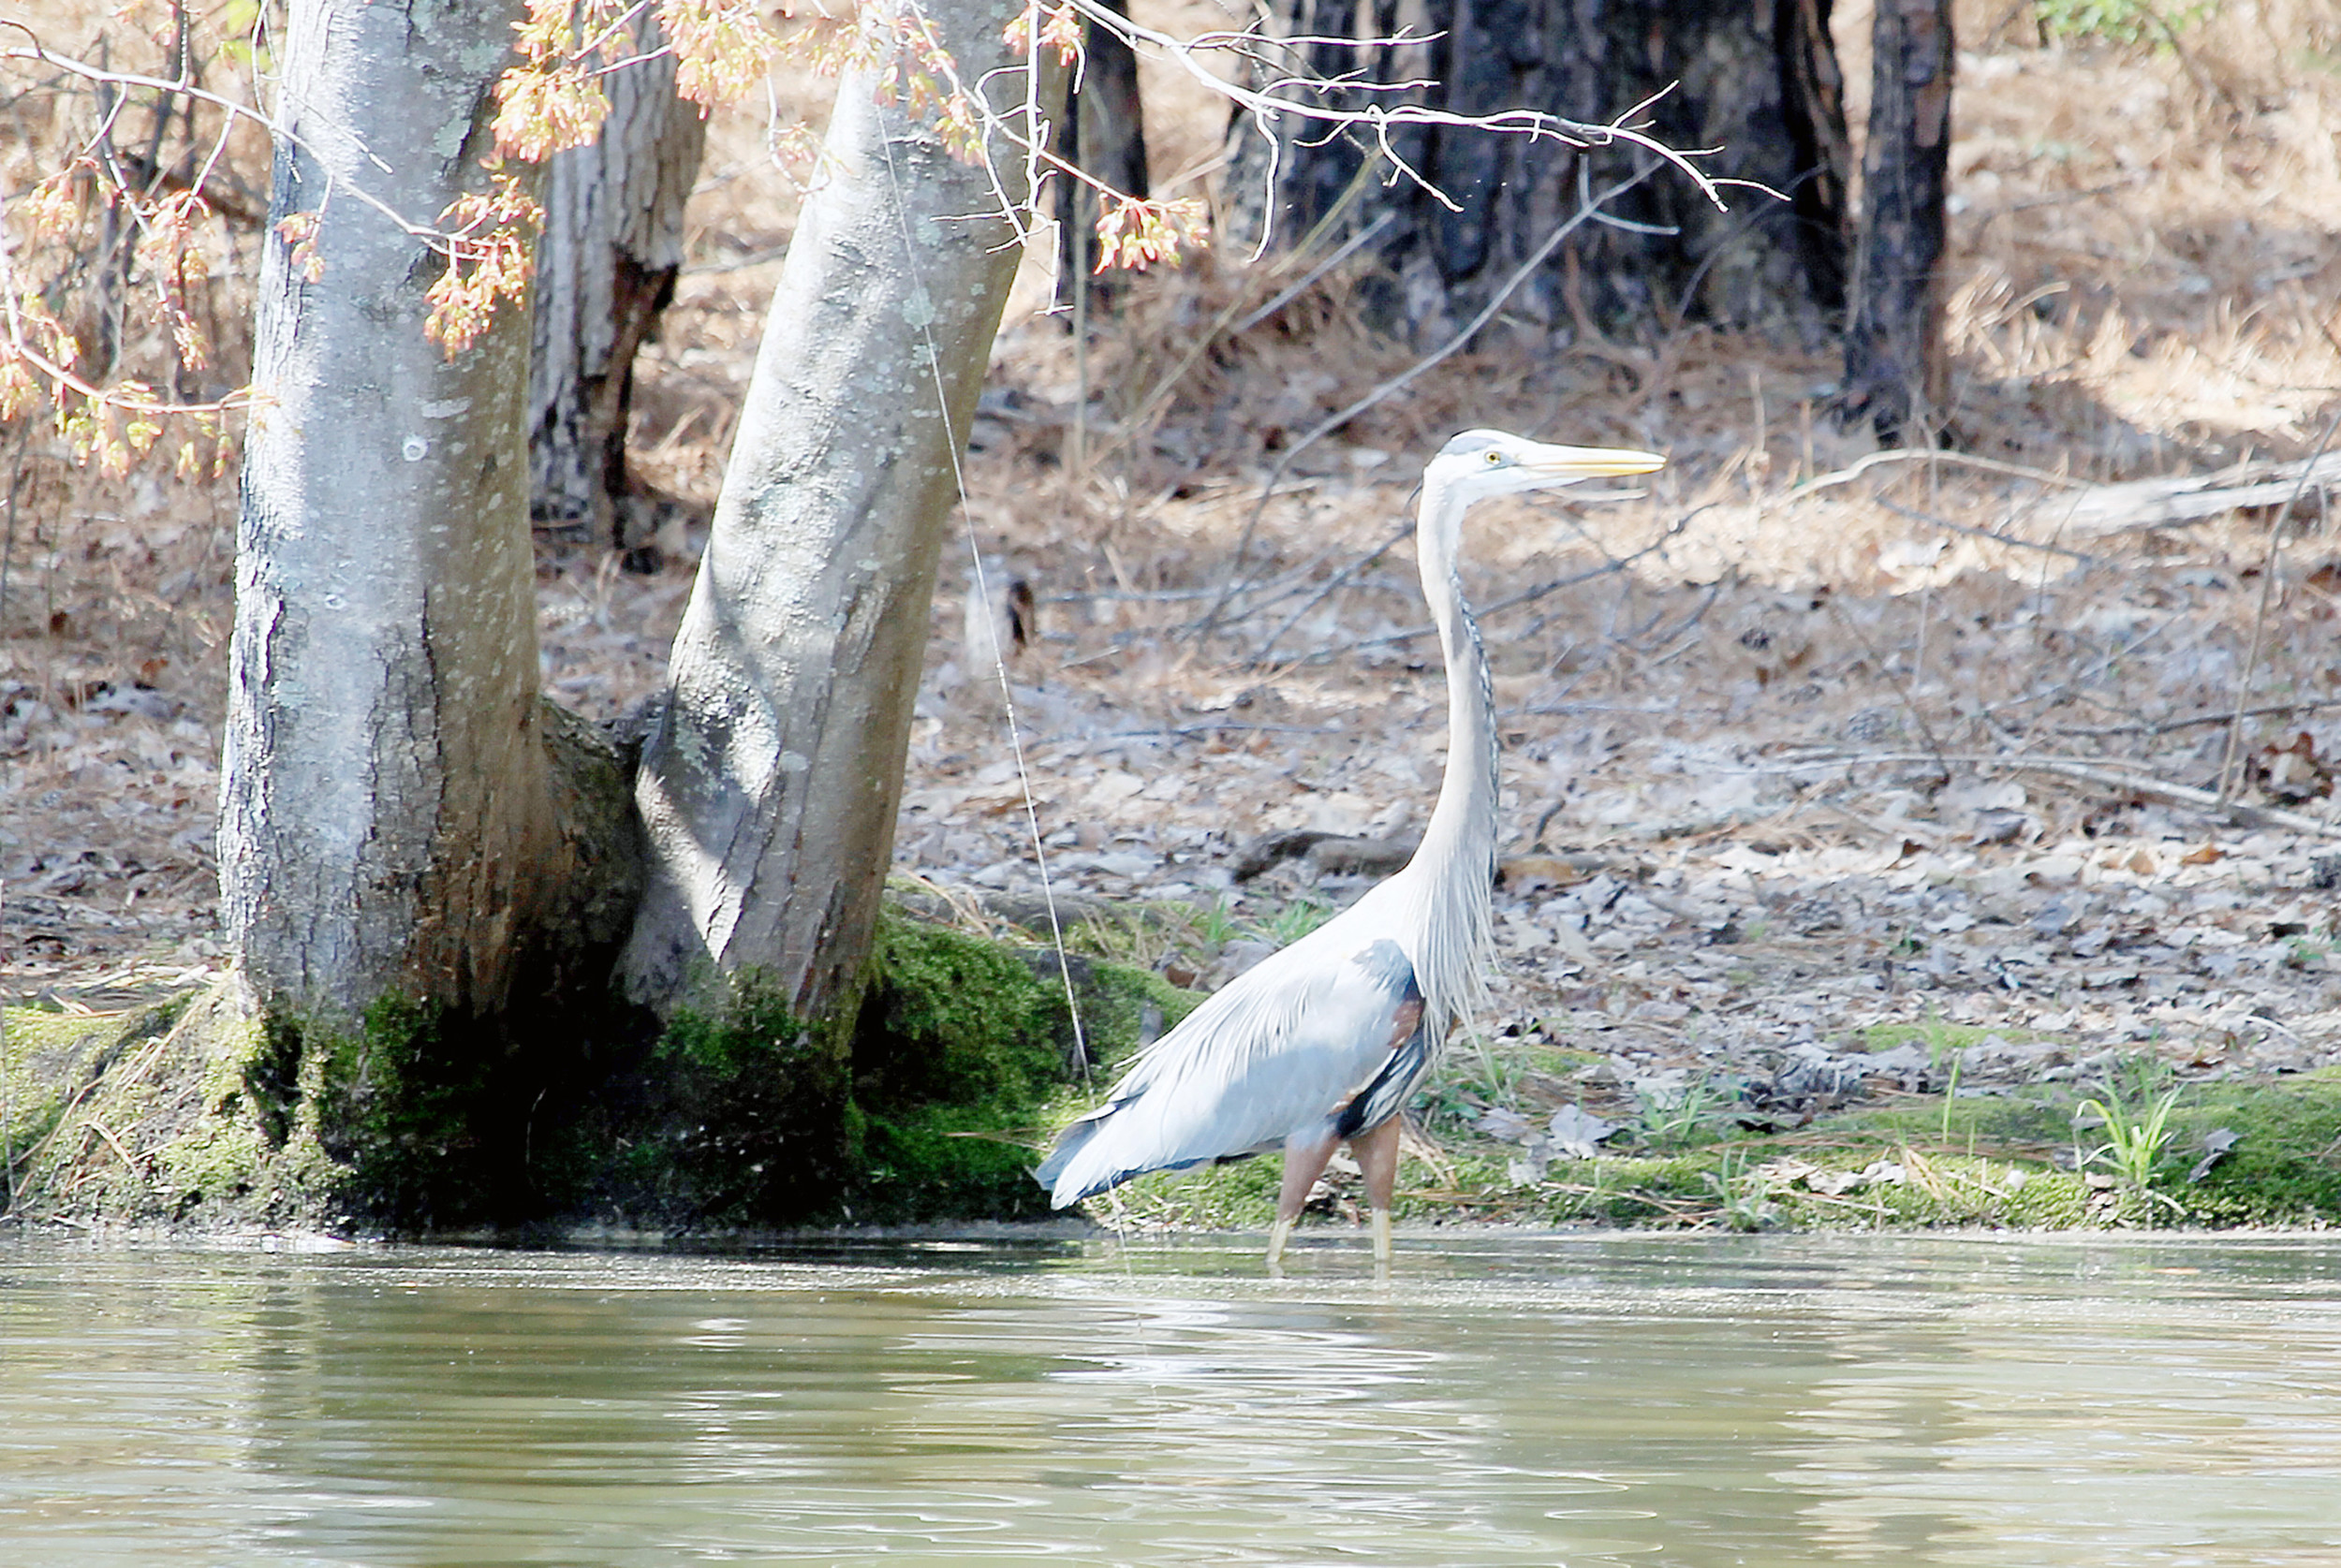 A crane searches for food along the shore of Walker County Lake on Monday. The lake, part of the West Alabama Birding Trail, has a number of species that live there year-round as well as some that move in and out seasonally.  Daily Mountain Eagle - Jennifer Cohron